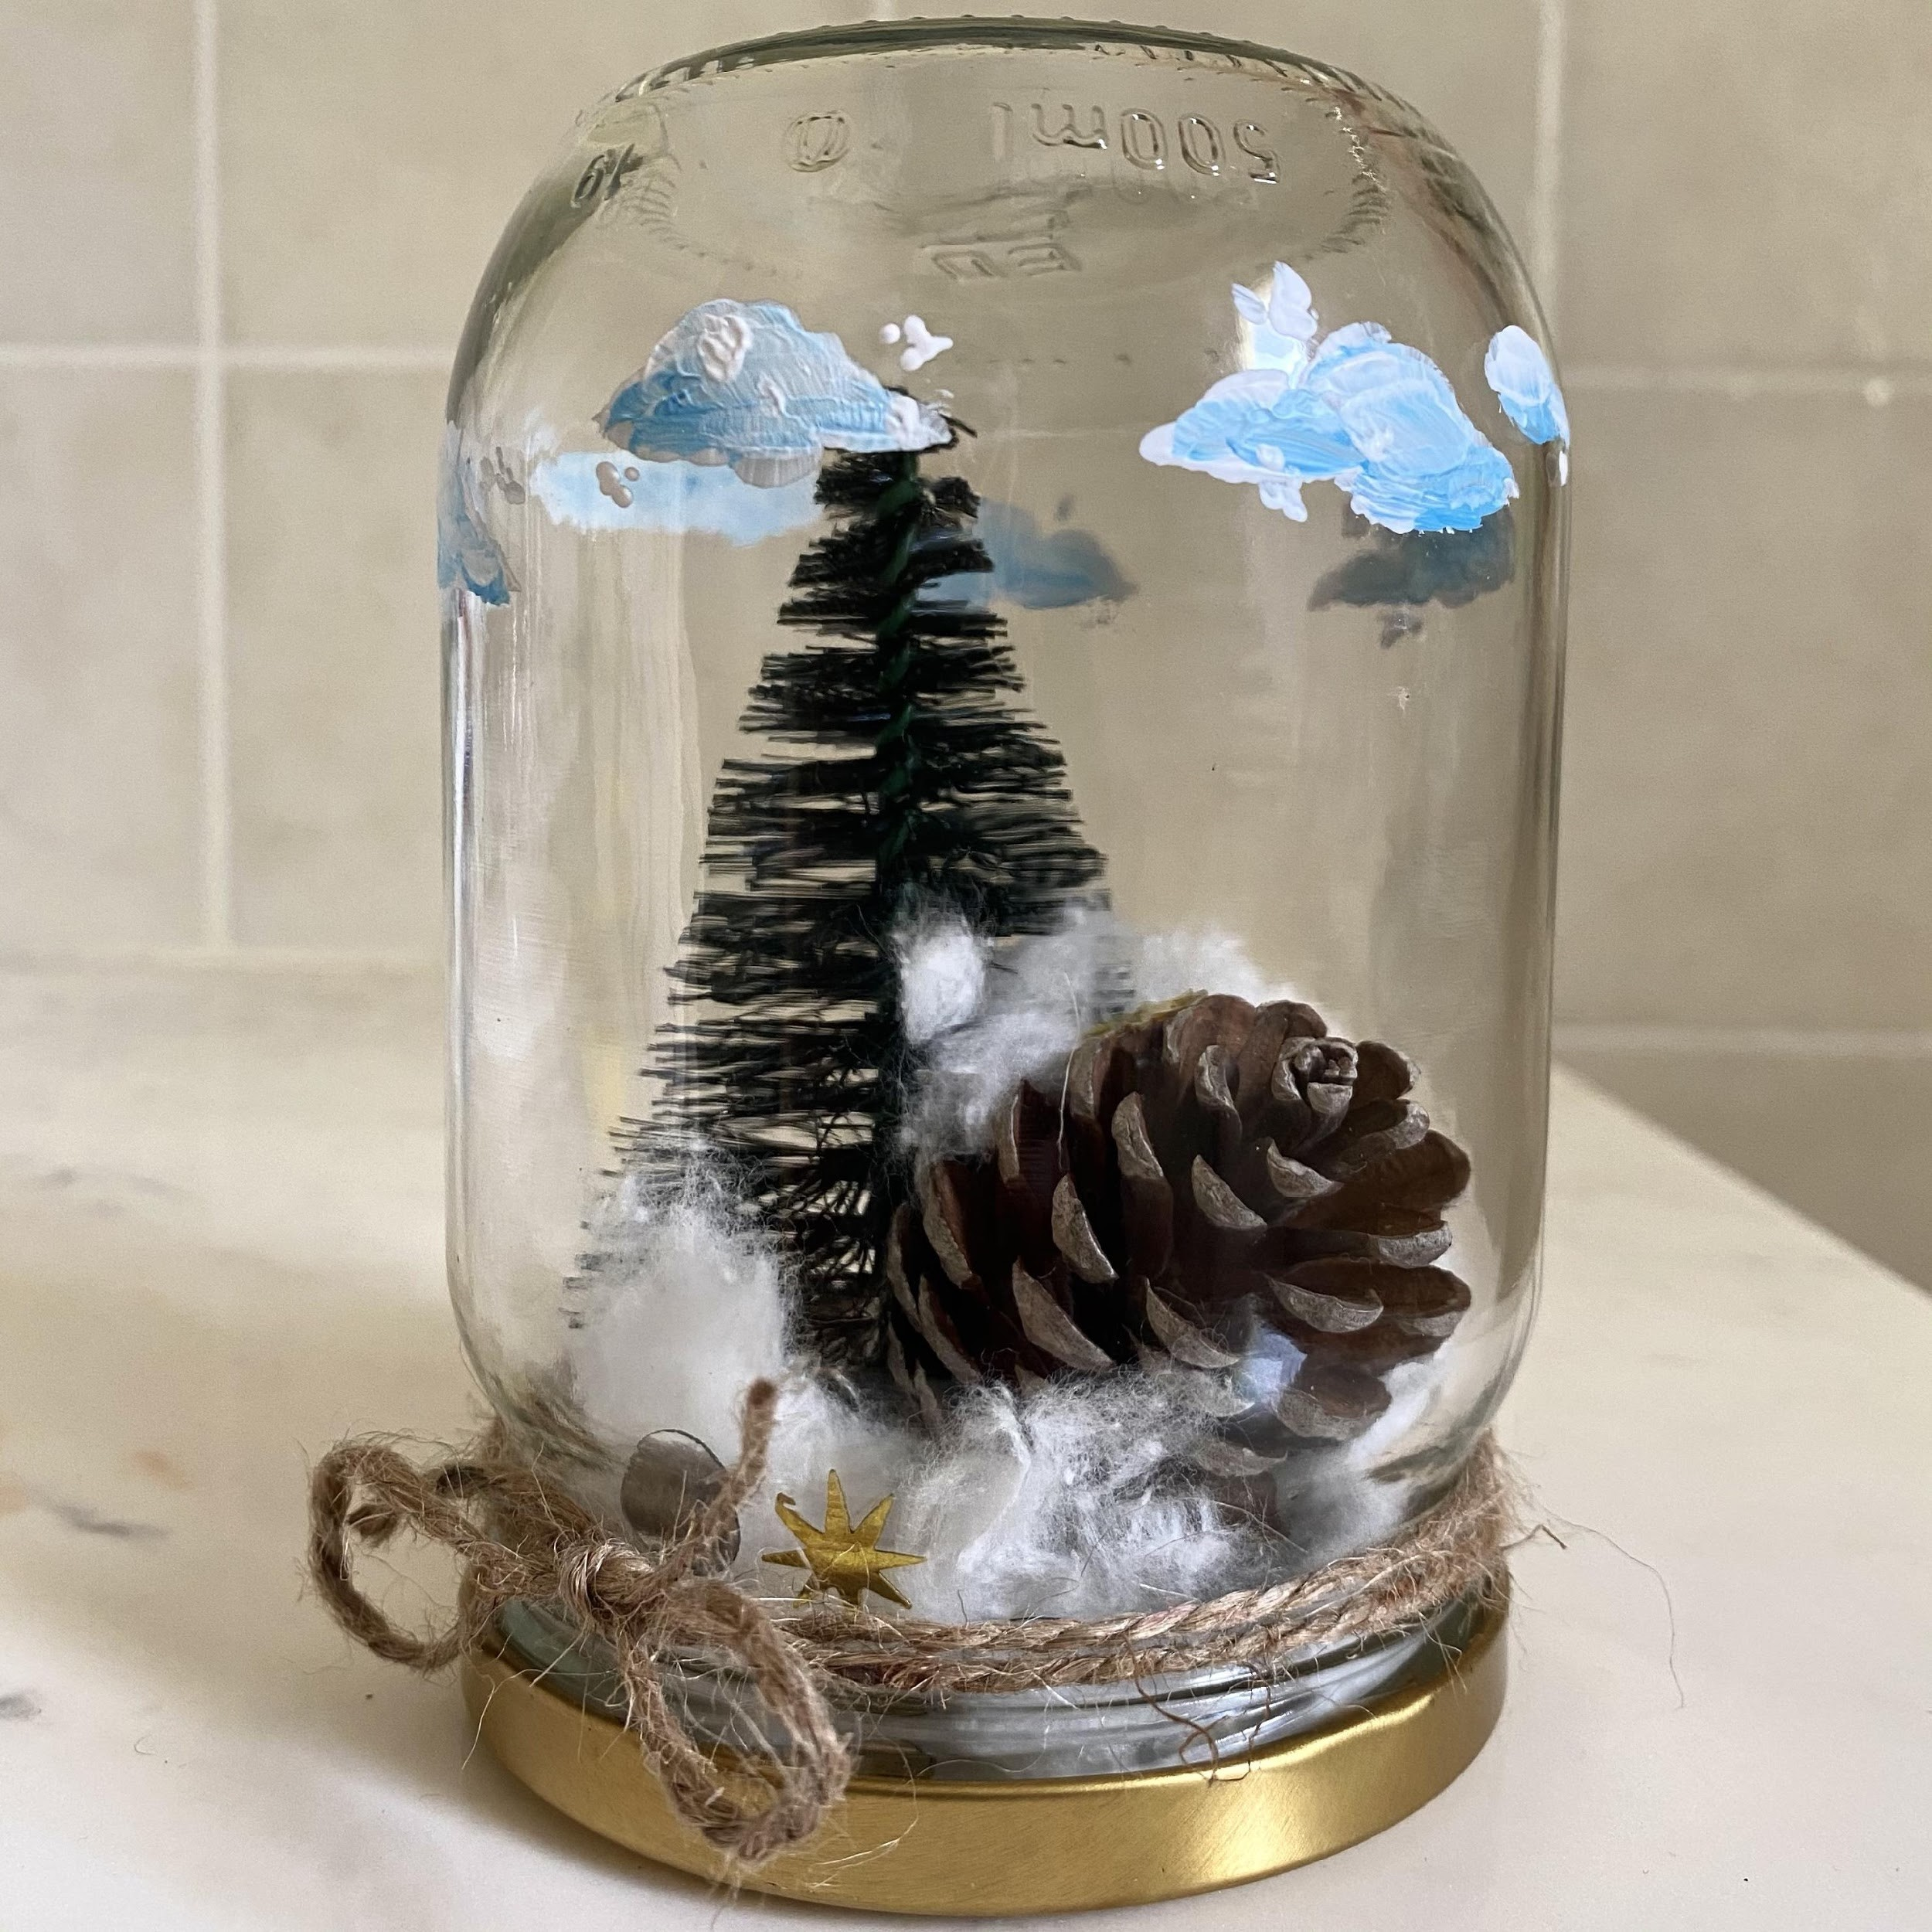 Finished snow globe